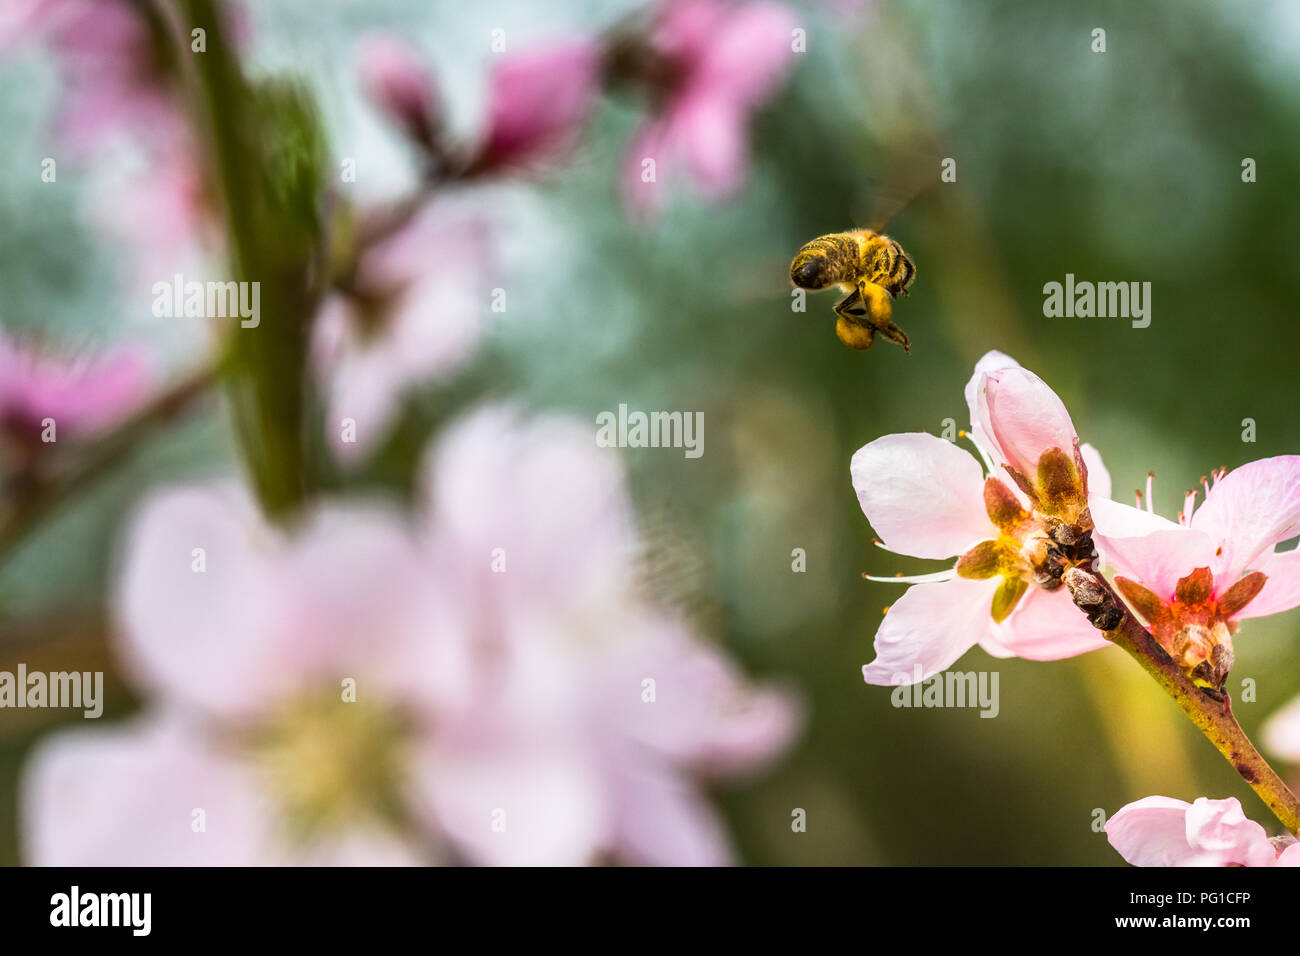 A hard working European honey bee pollinating a pink flower in a spring. Caught when flying. Beautiful macro shot with shallow depth of field and blur - Stock Image